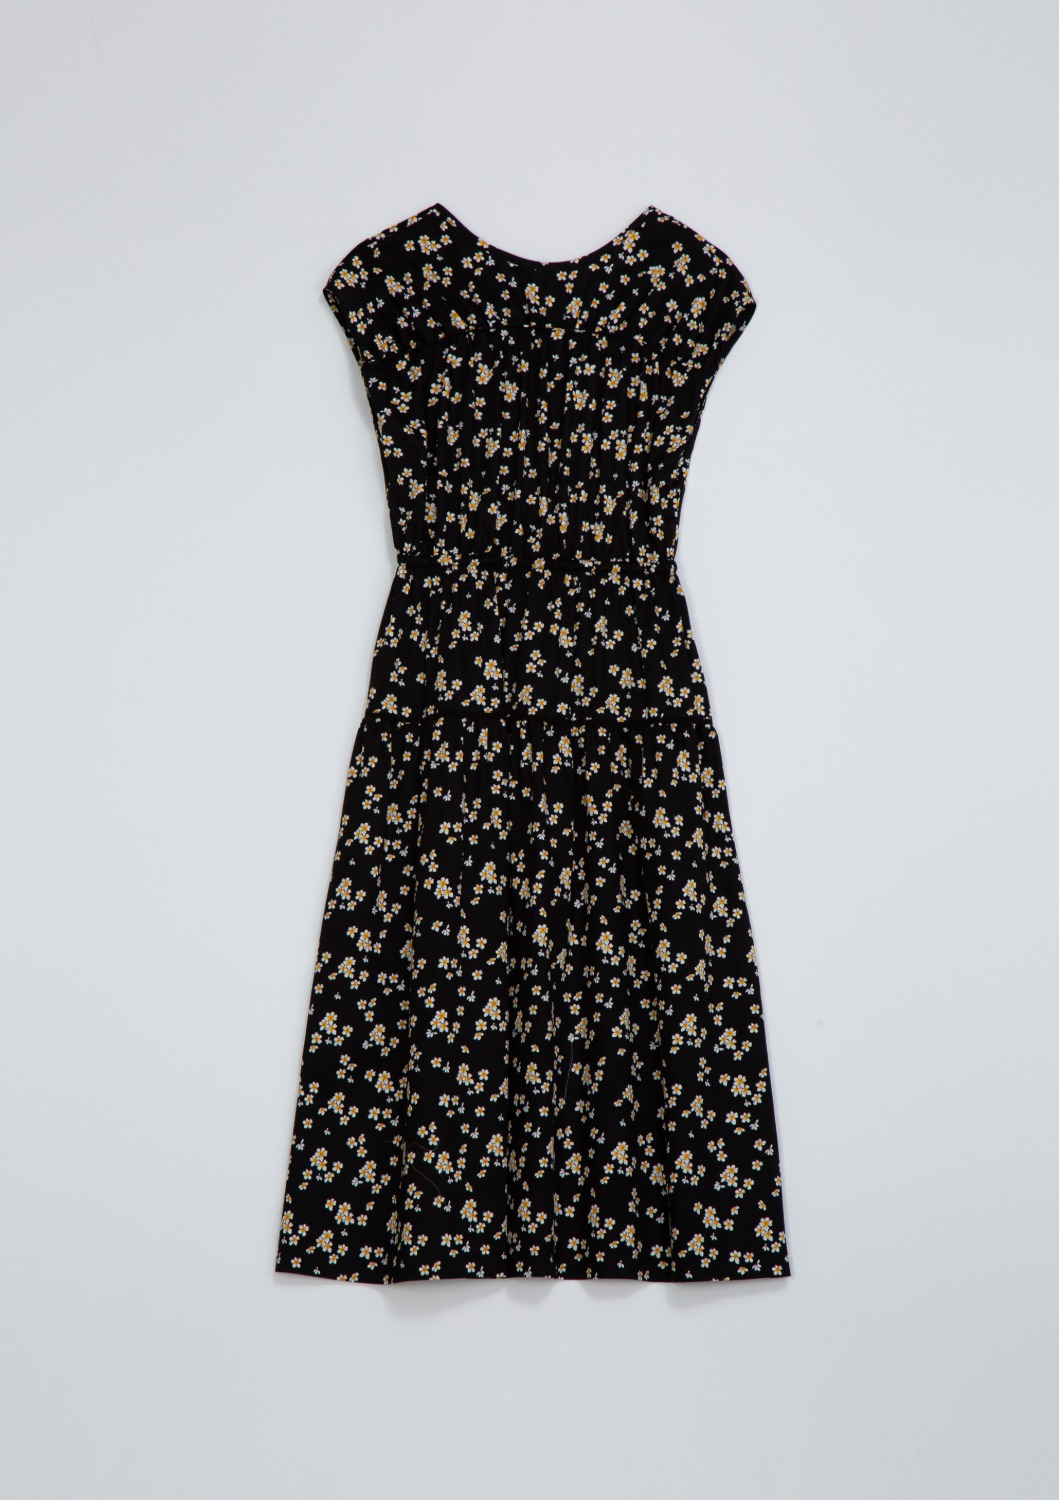 De Cut-out Dress - Black Floral Artwork